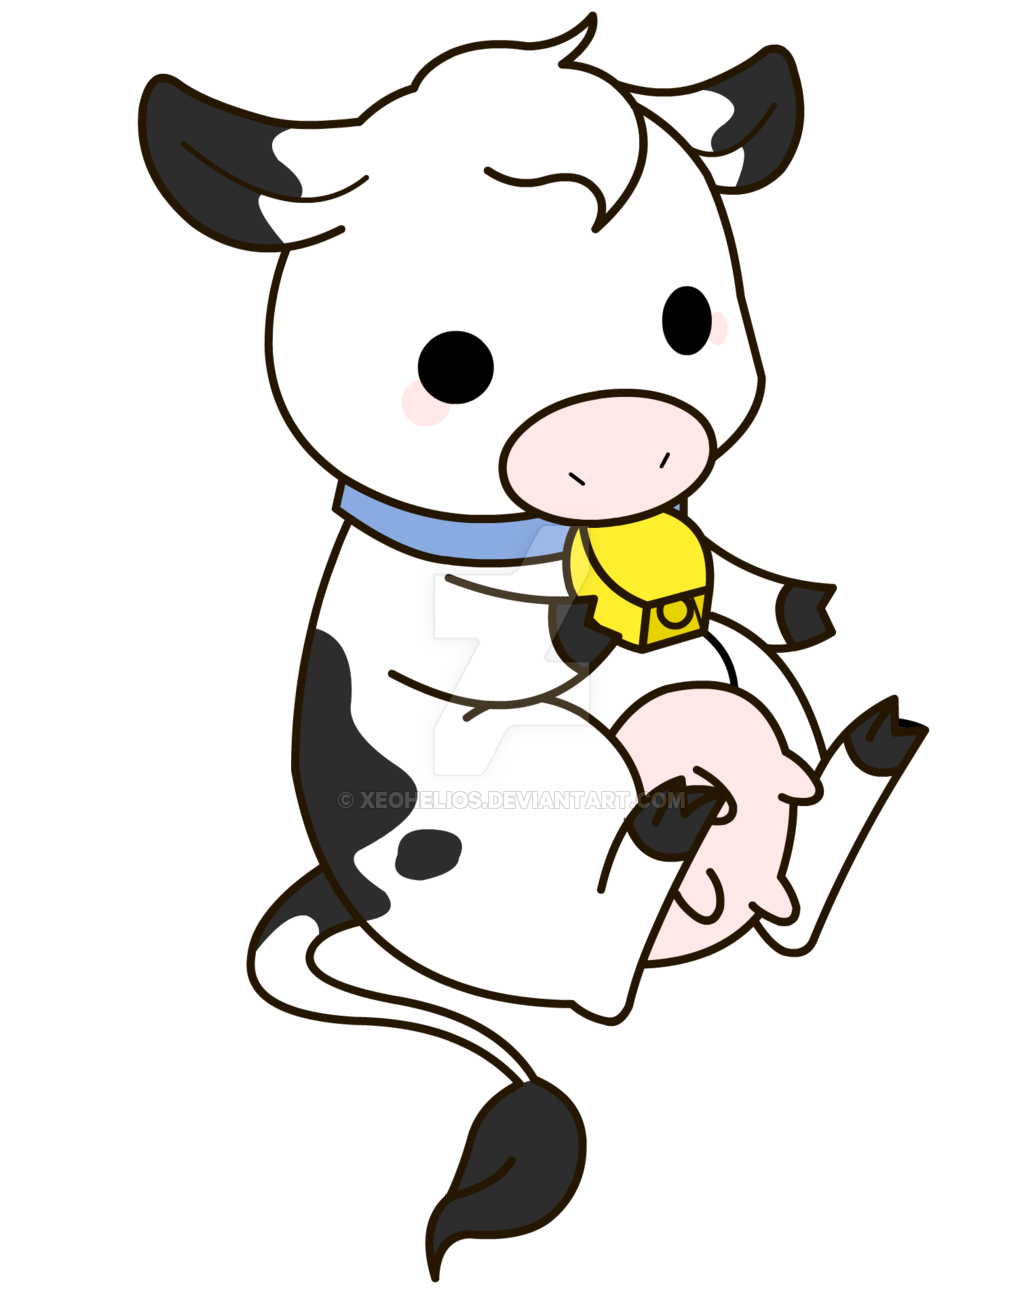 Cmsn chibi farm cow. Farmers clipart cattle farming